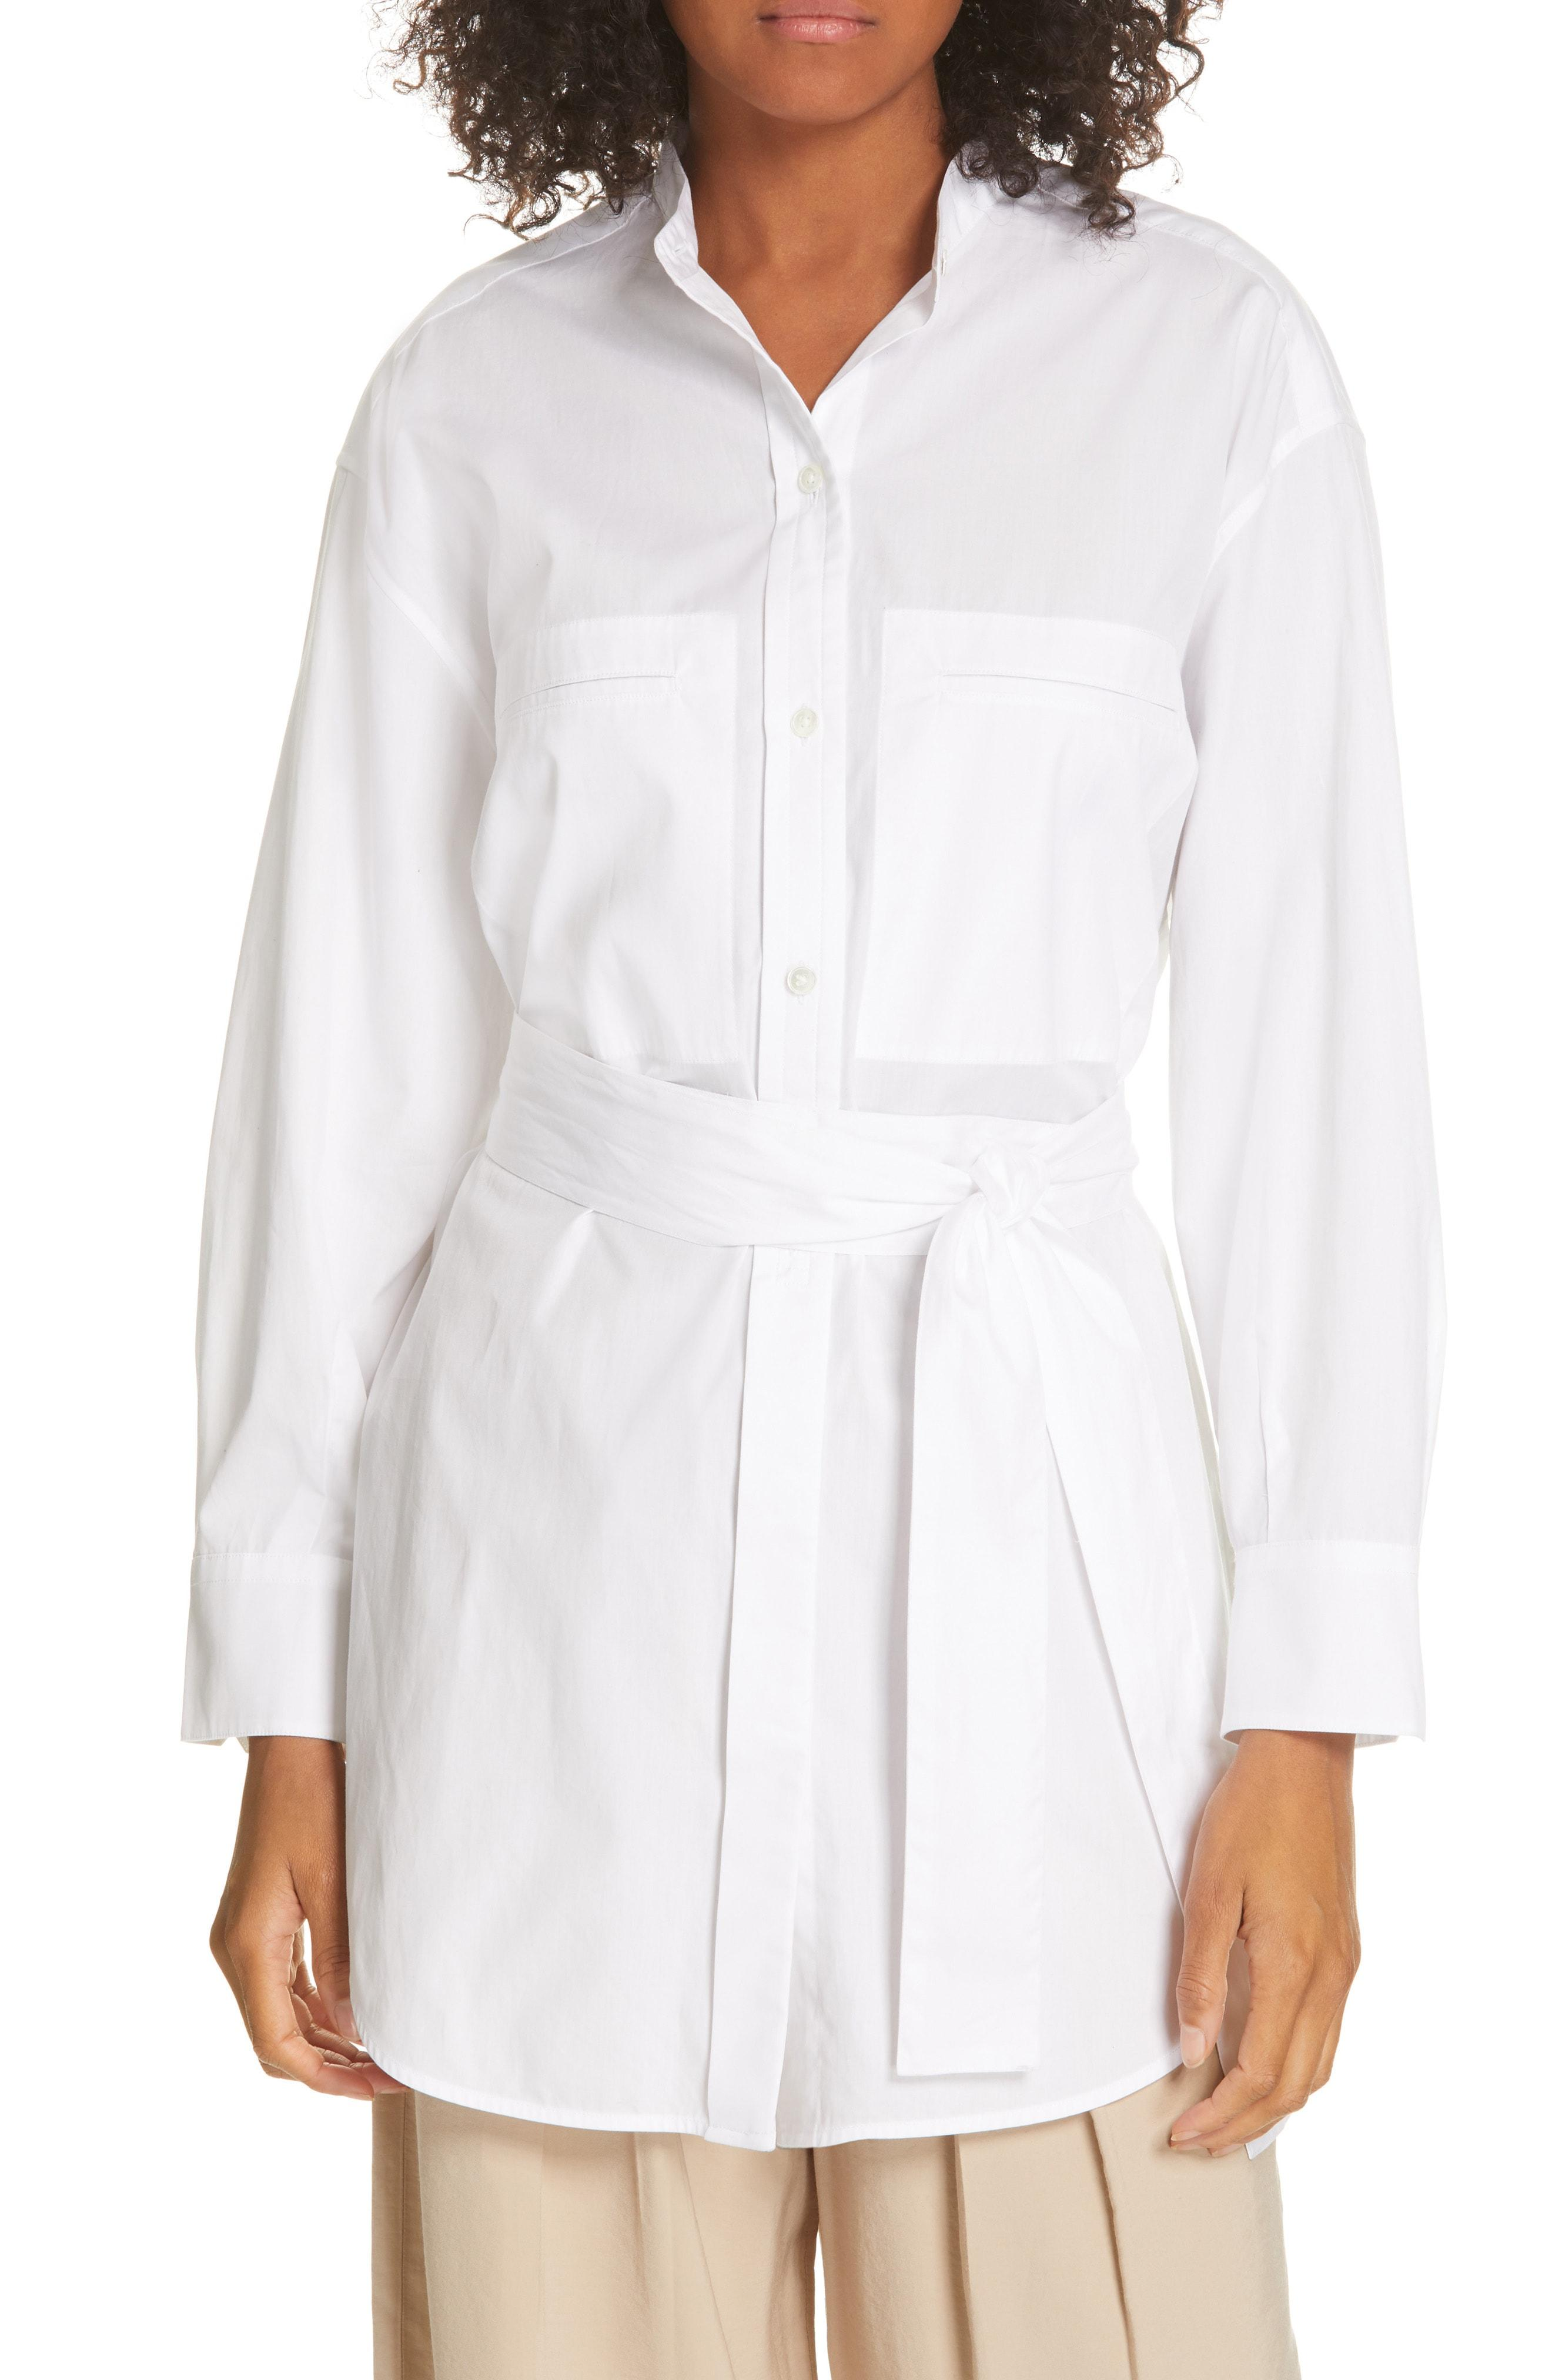 2cd05b4f9a2b53 Vince - White Belted Oversize Cotton Blouse - Lyst. View fullscreen